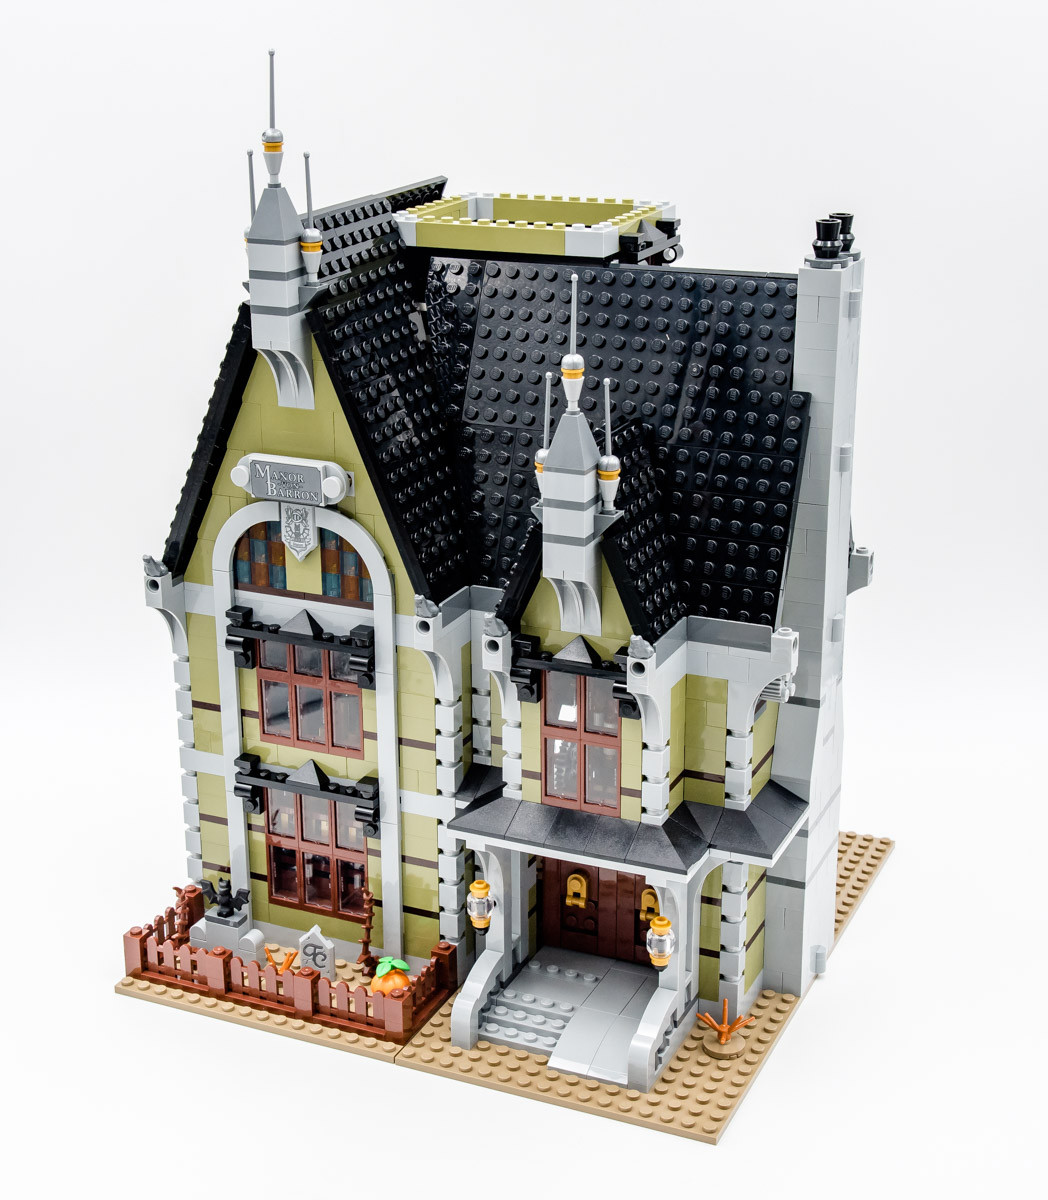 REVIEW-LEGO-10273-Haunted-House-09.jpg?s